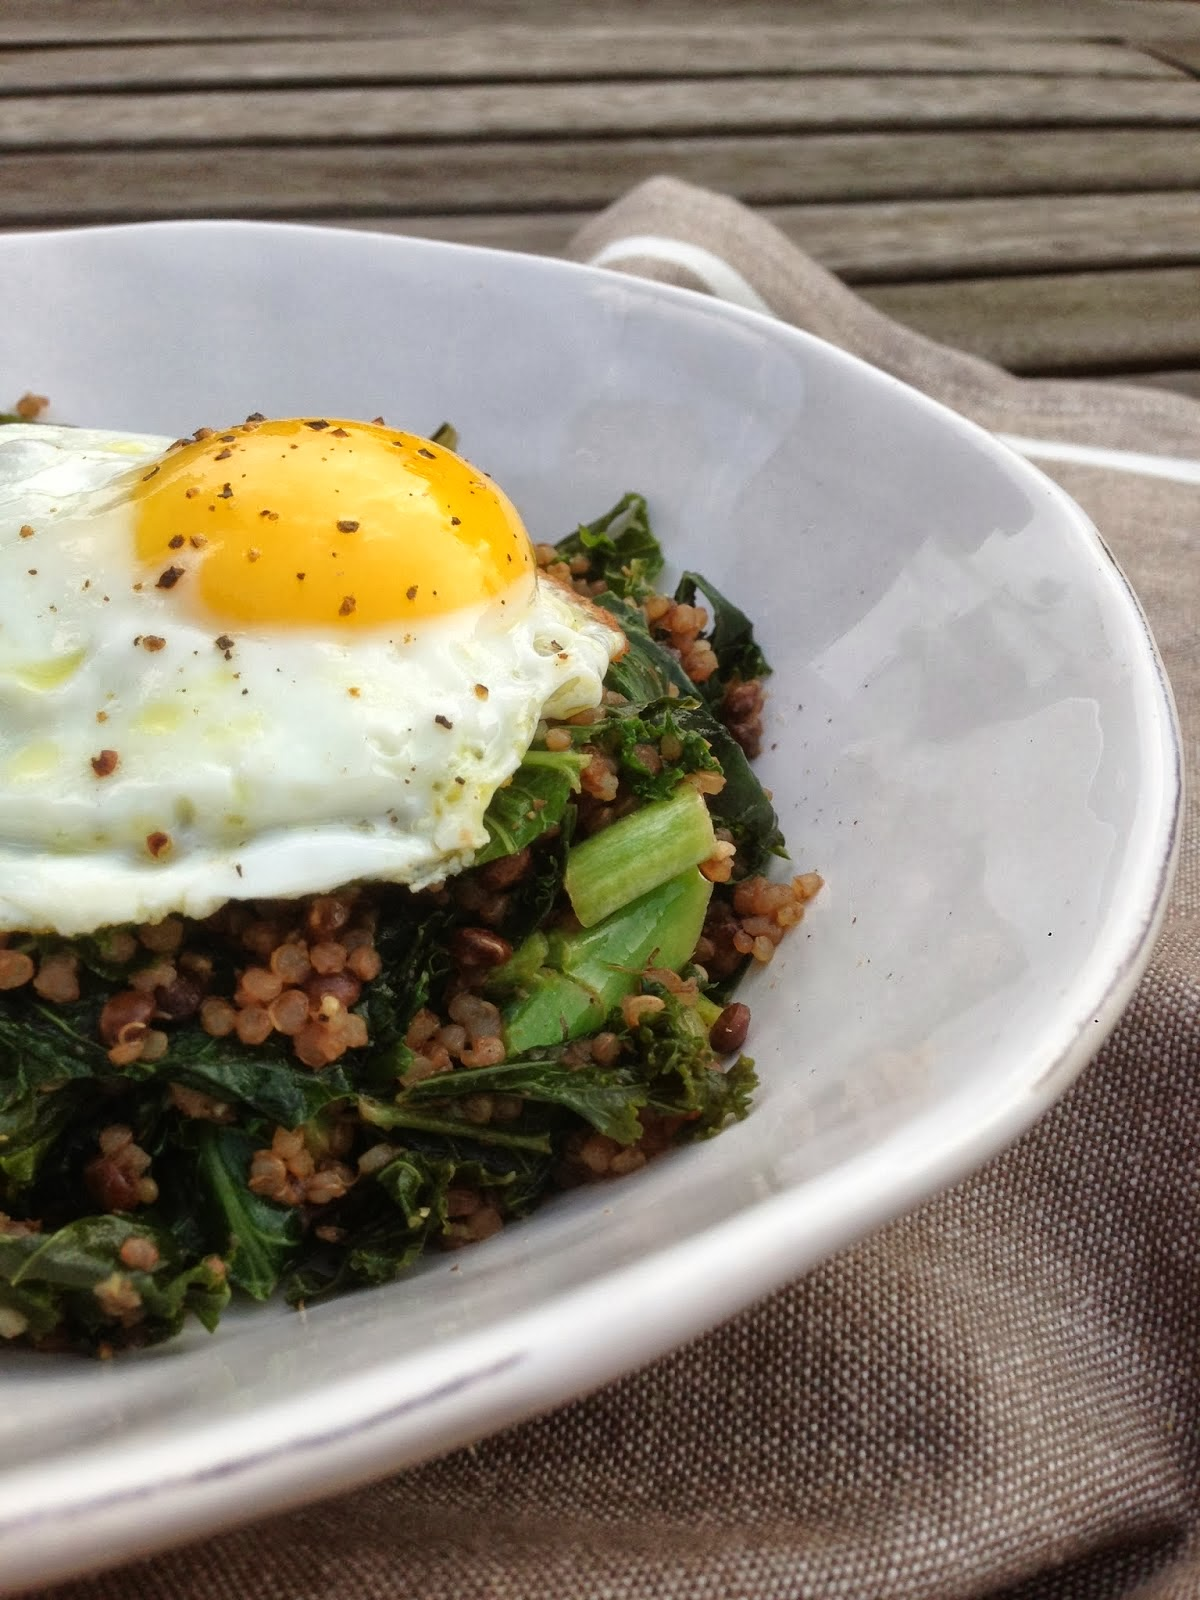 Kale, Quinoa and Puy Lentils